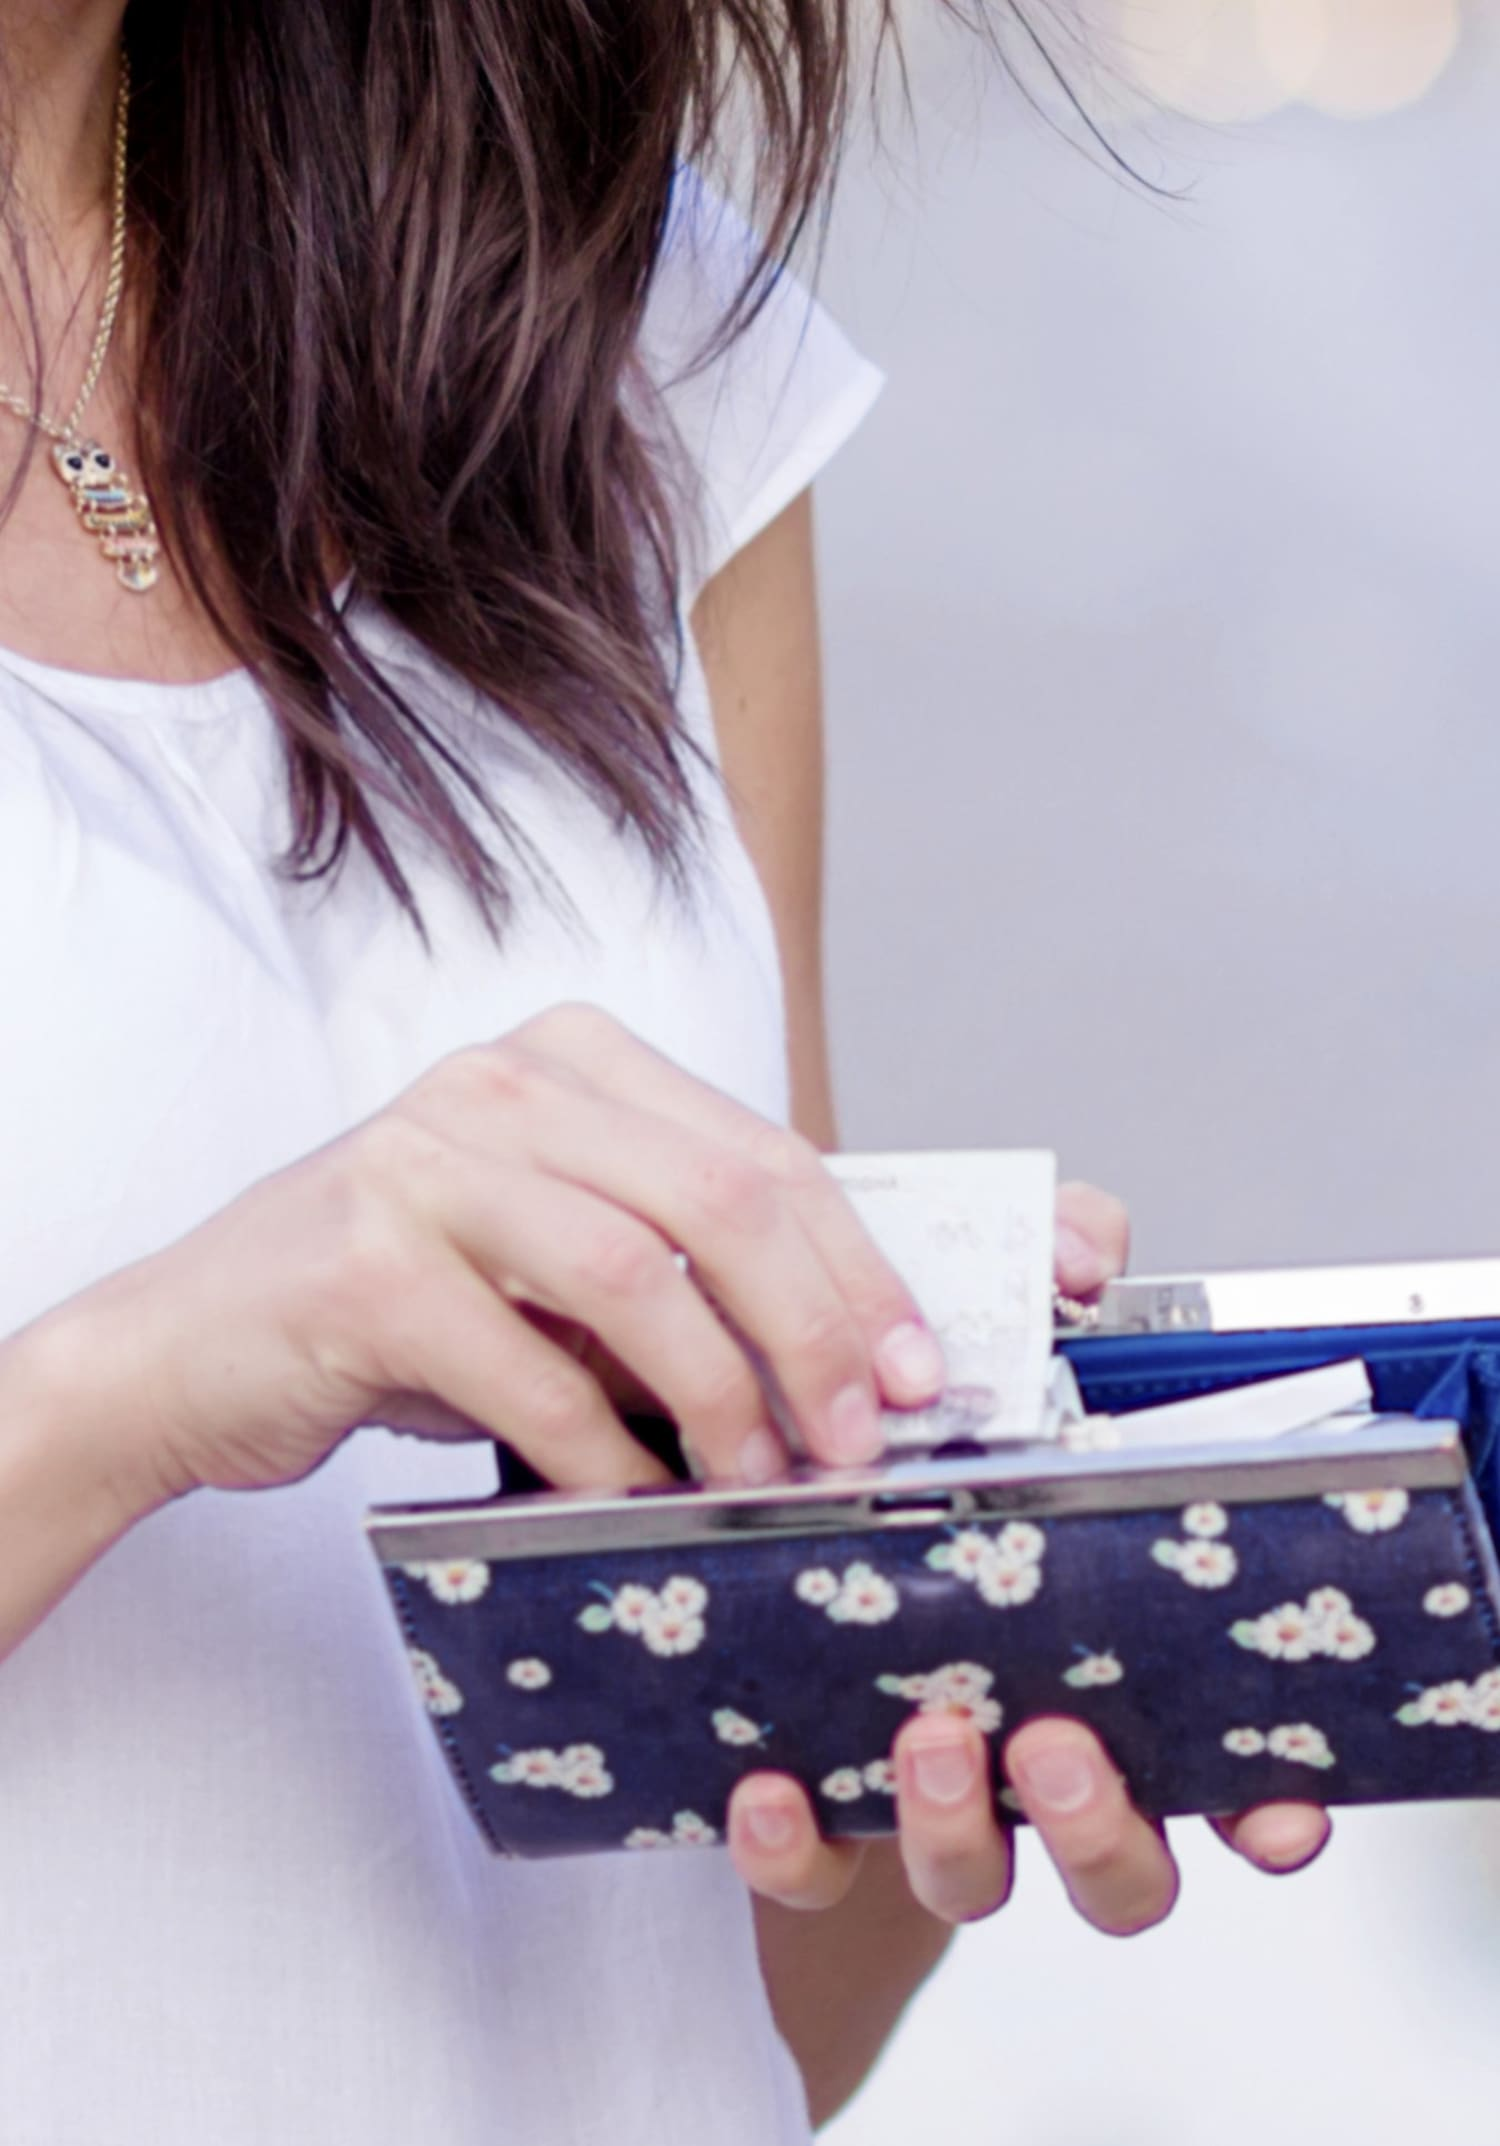 A Simple & Painless Money Habit That'll Make Your Life a Whole Lot Better